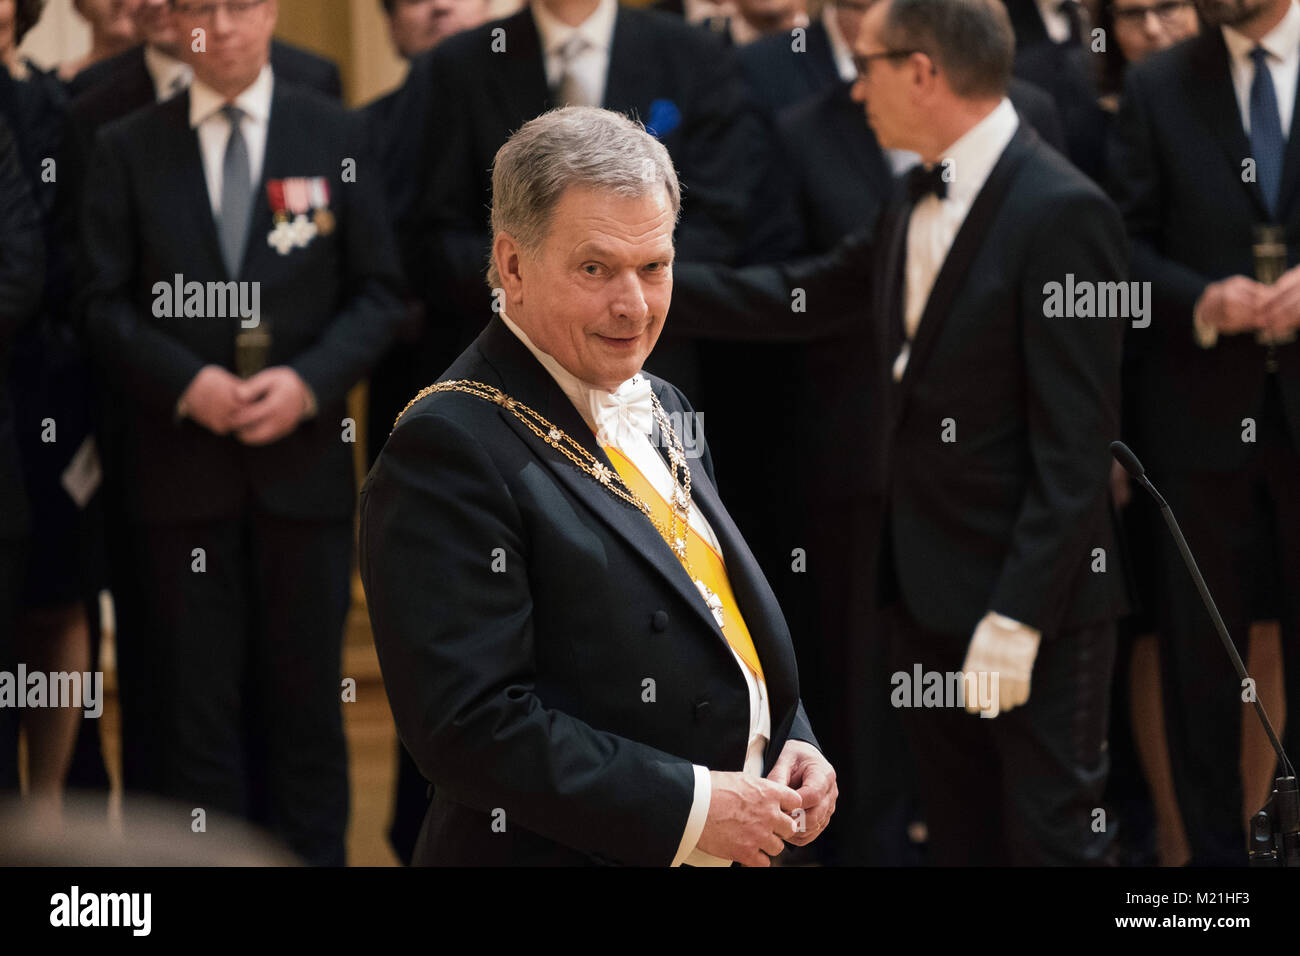 Helsinki, Uusima, Finland. 1st Feb, 2018. Sauli Niinisto (C) reconfirmed President of the Republic of Finland during - Stock Image